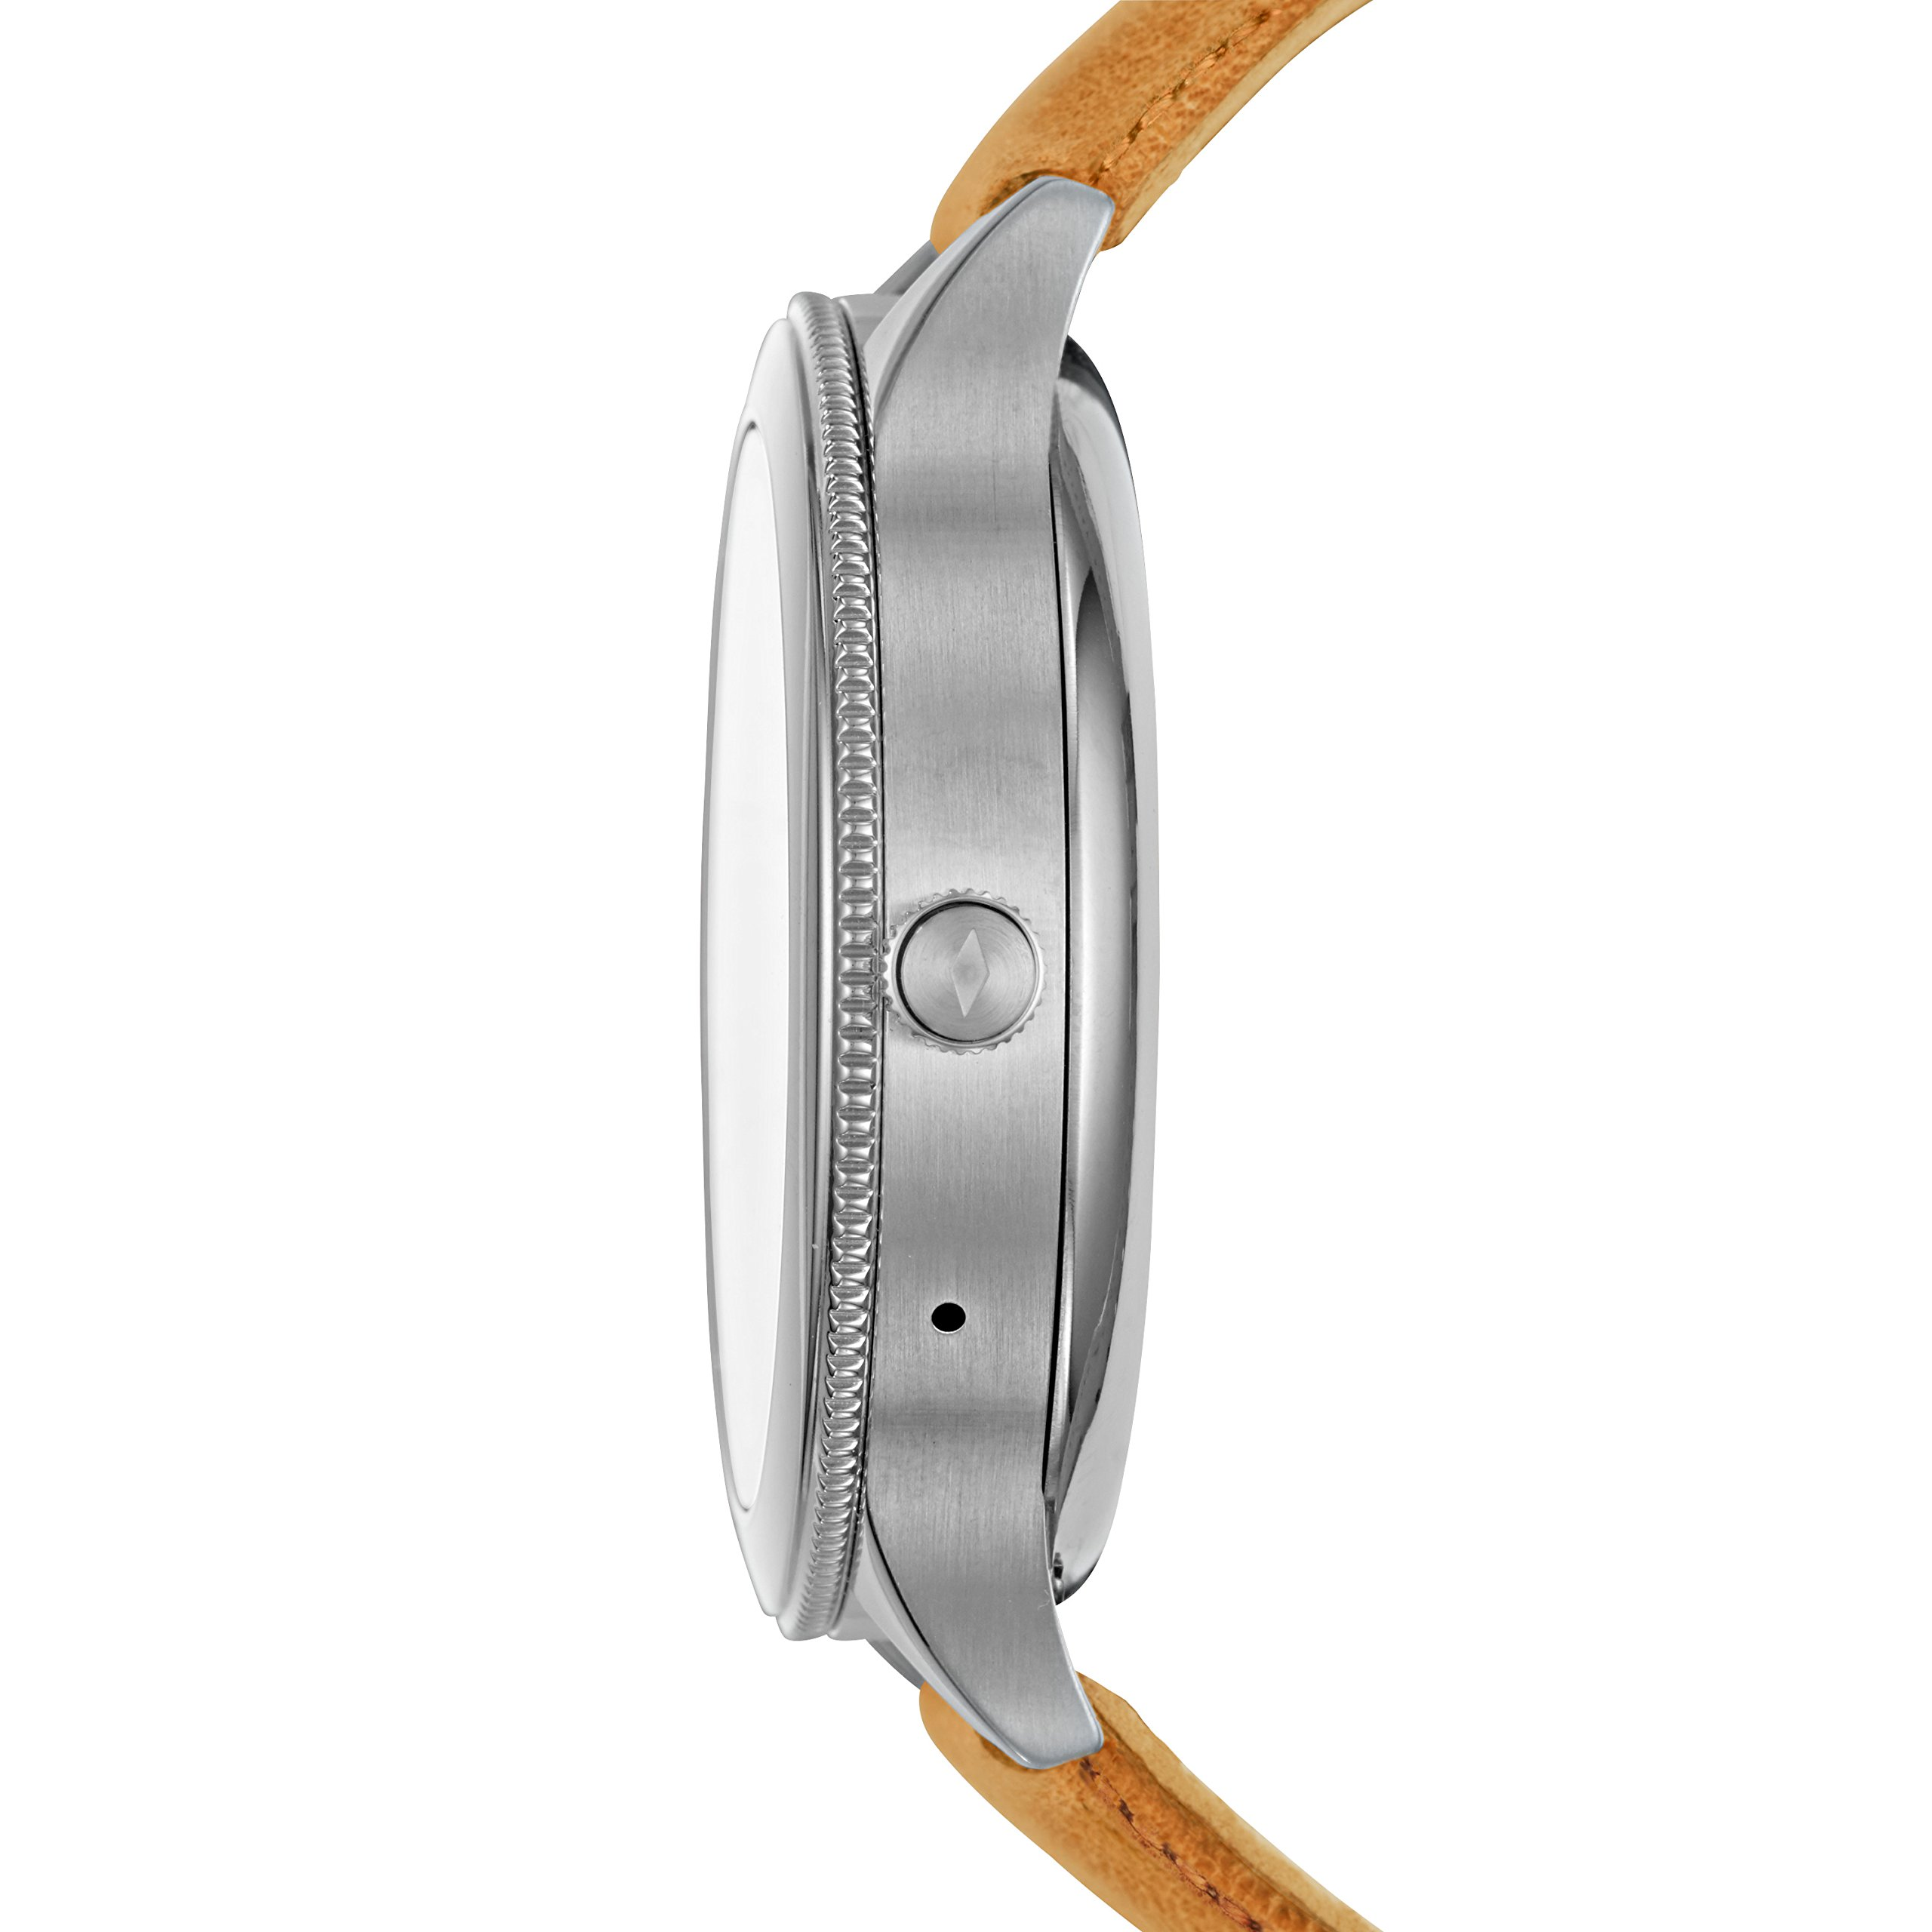 Fossil Gen 3 Smartwatch - Q Venture Luggage Leather FTW6007 by Fossil (Image #6)